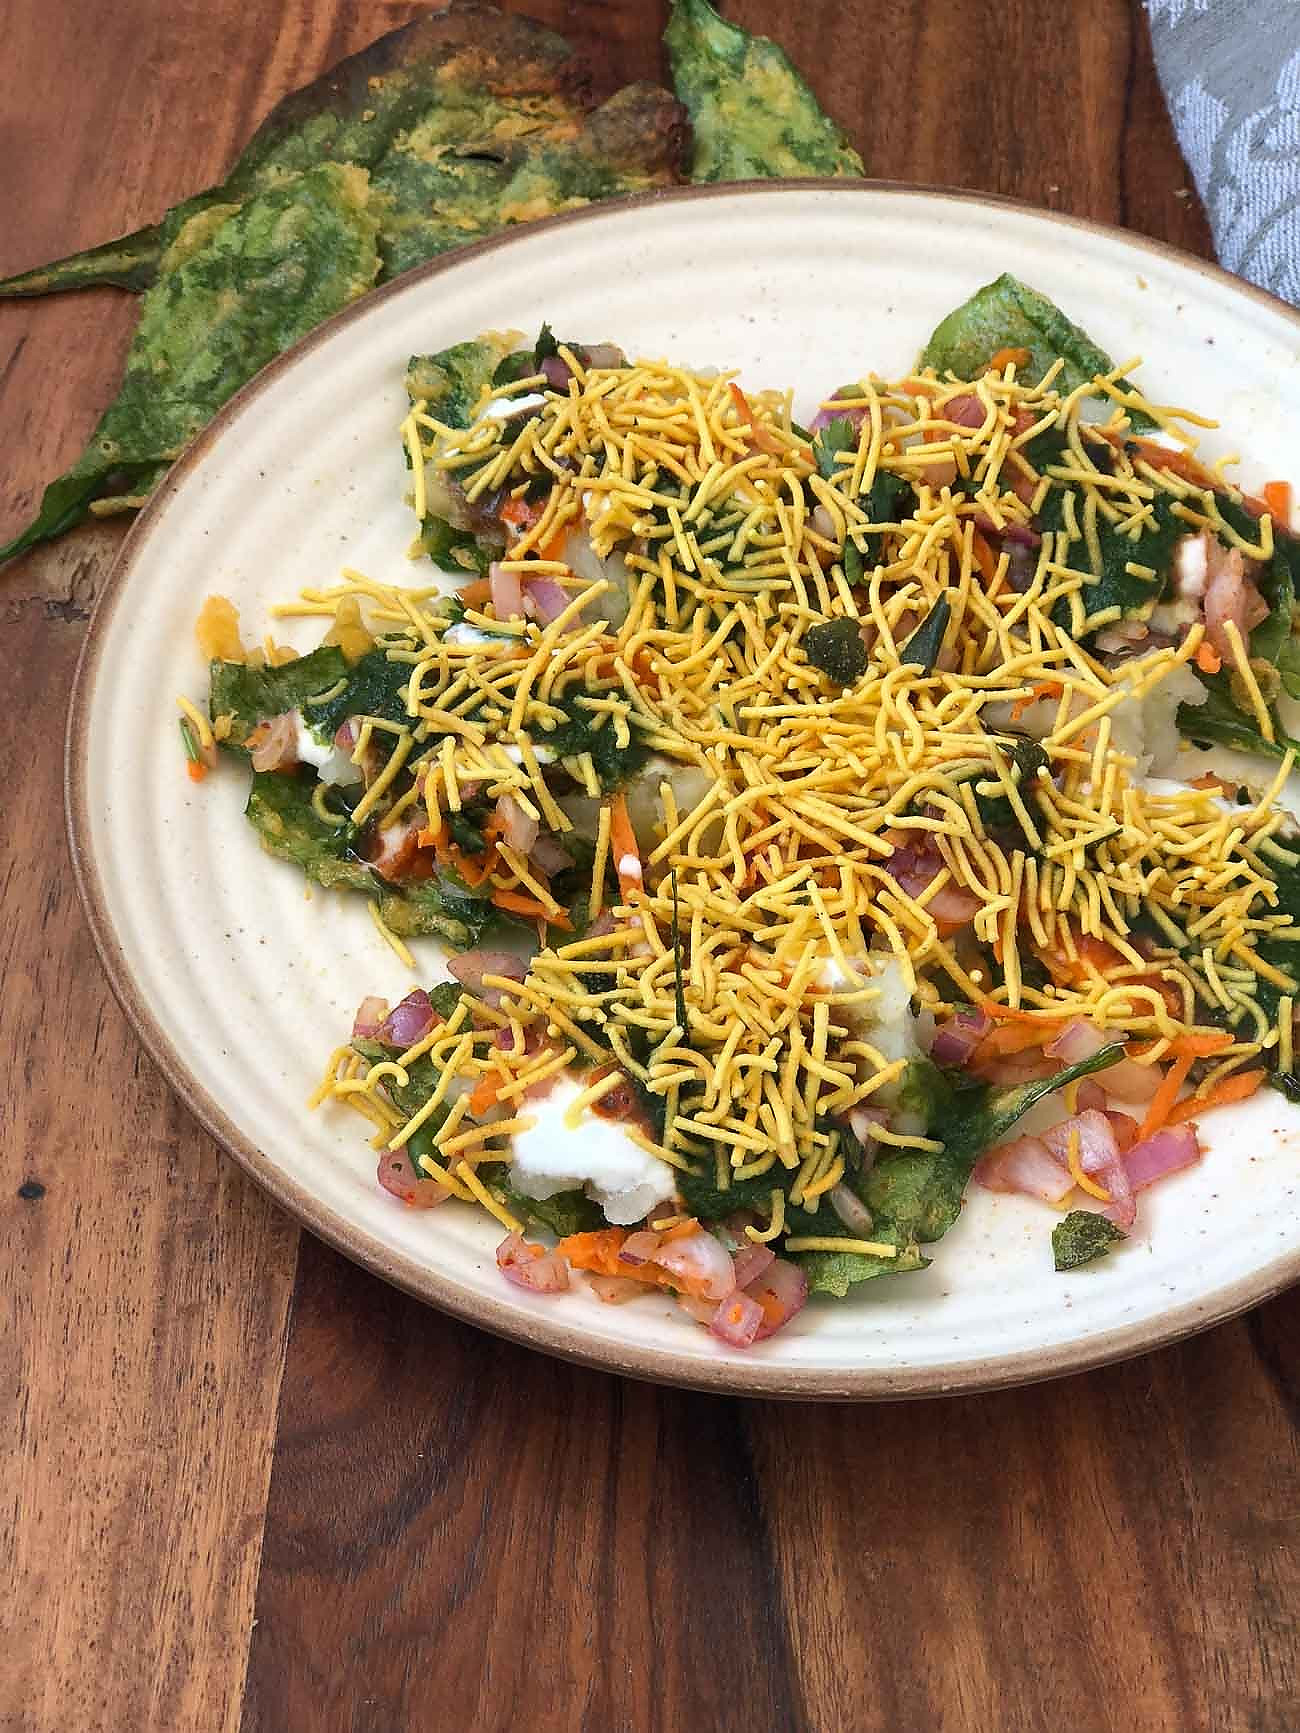 Palak Patta Chaat Recipe-Delhi style Spinach leaf Chaat